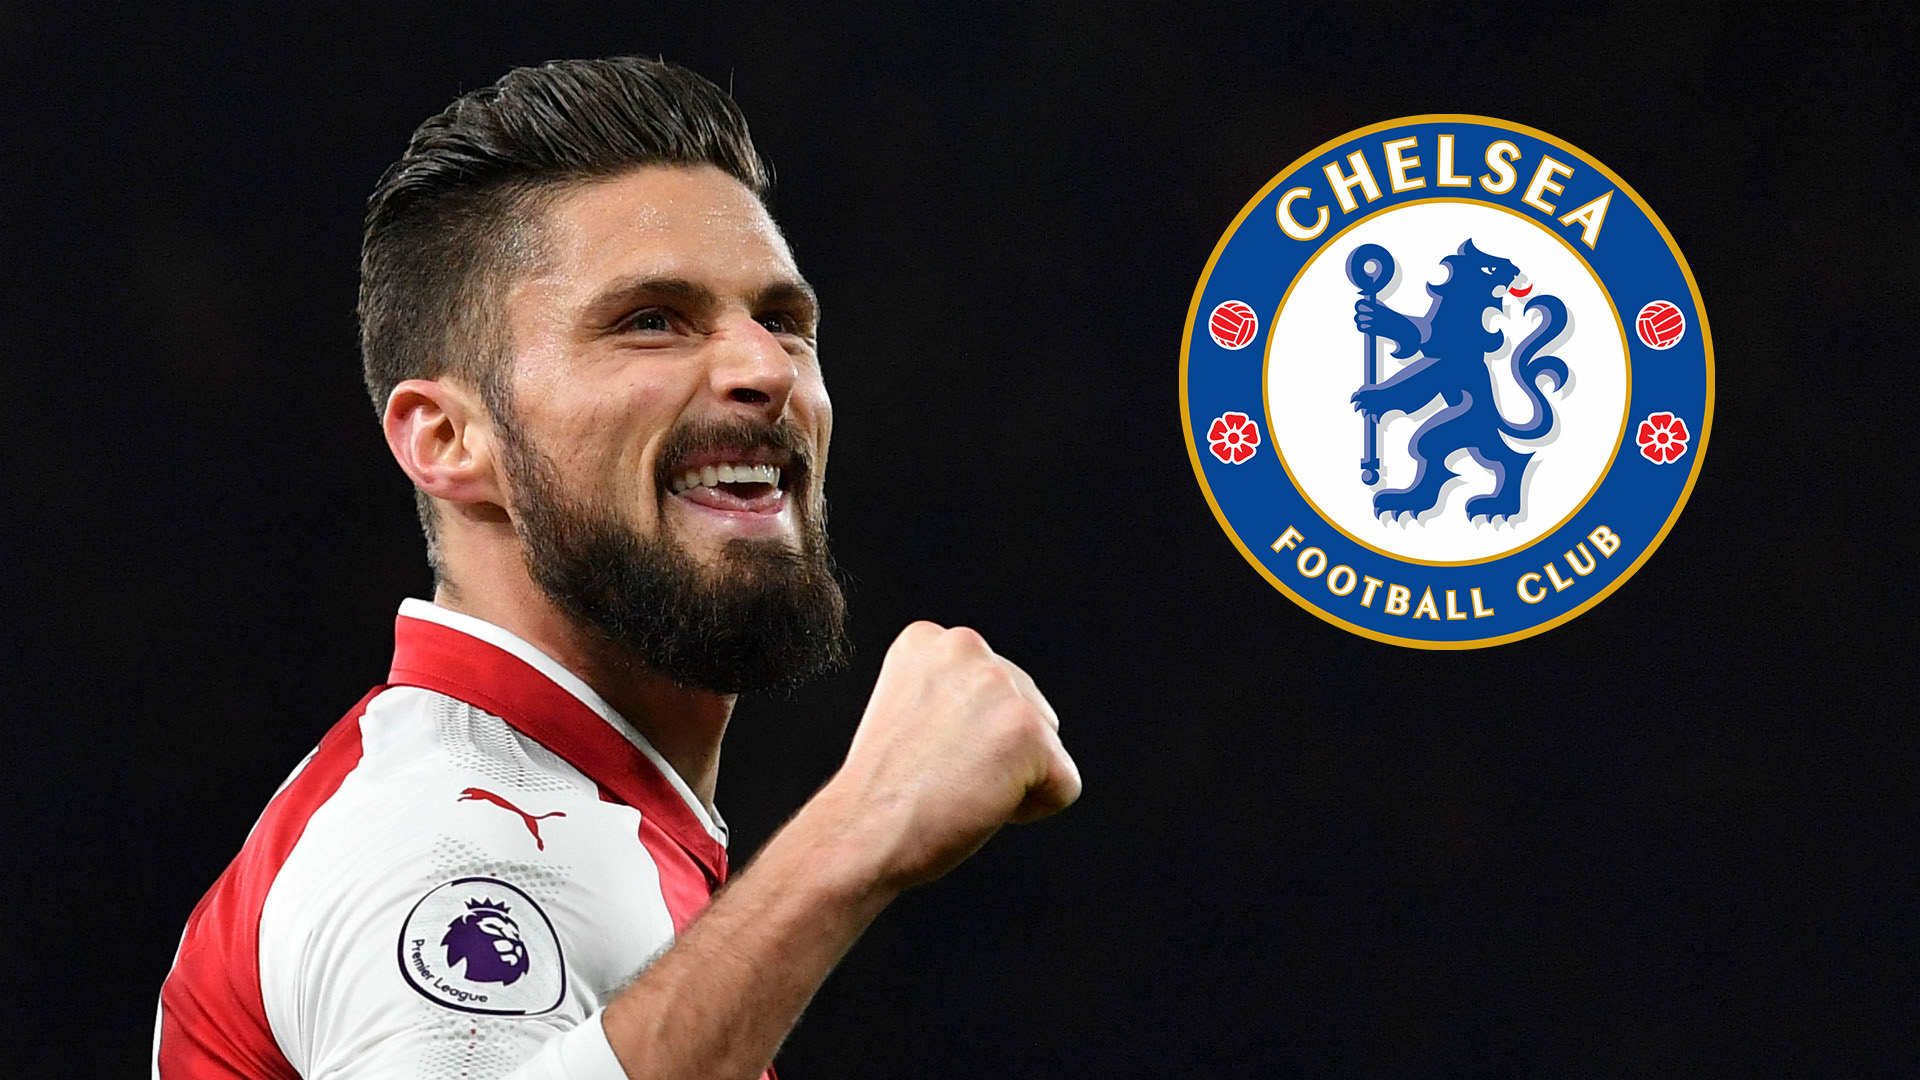 olivier giroud chelsea - ROUND-UP of 30/1/2018 TRANSFER NEWS, DONE DEALS AND RUMOURS